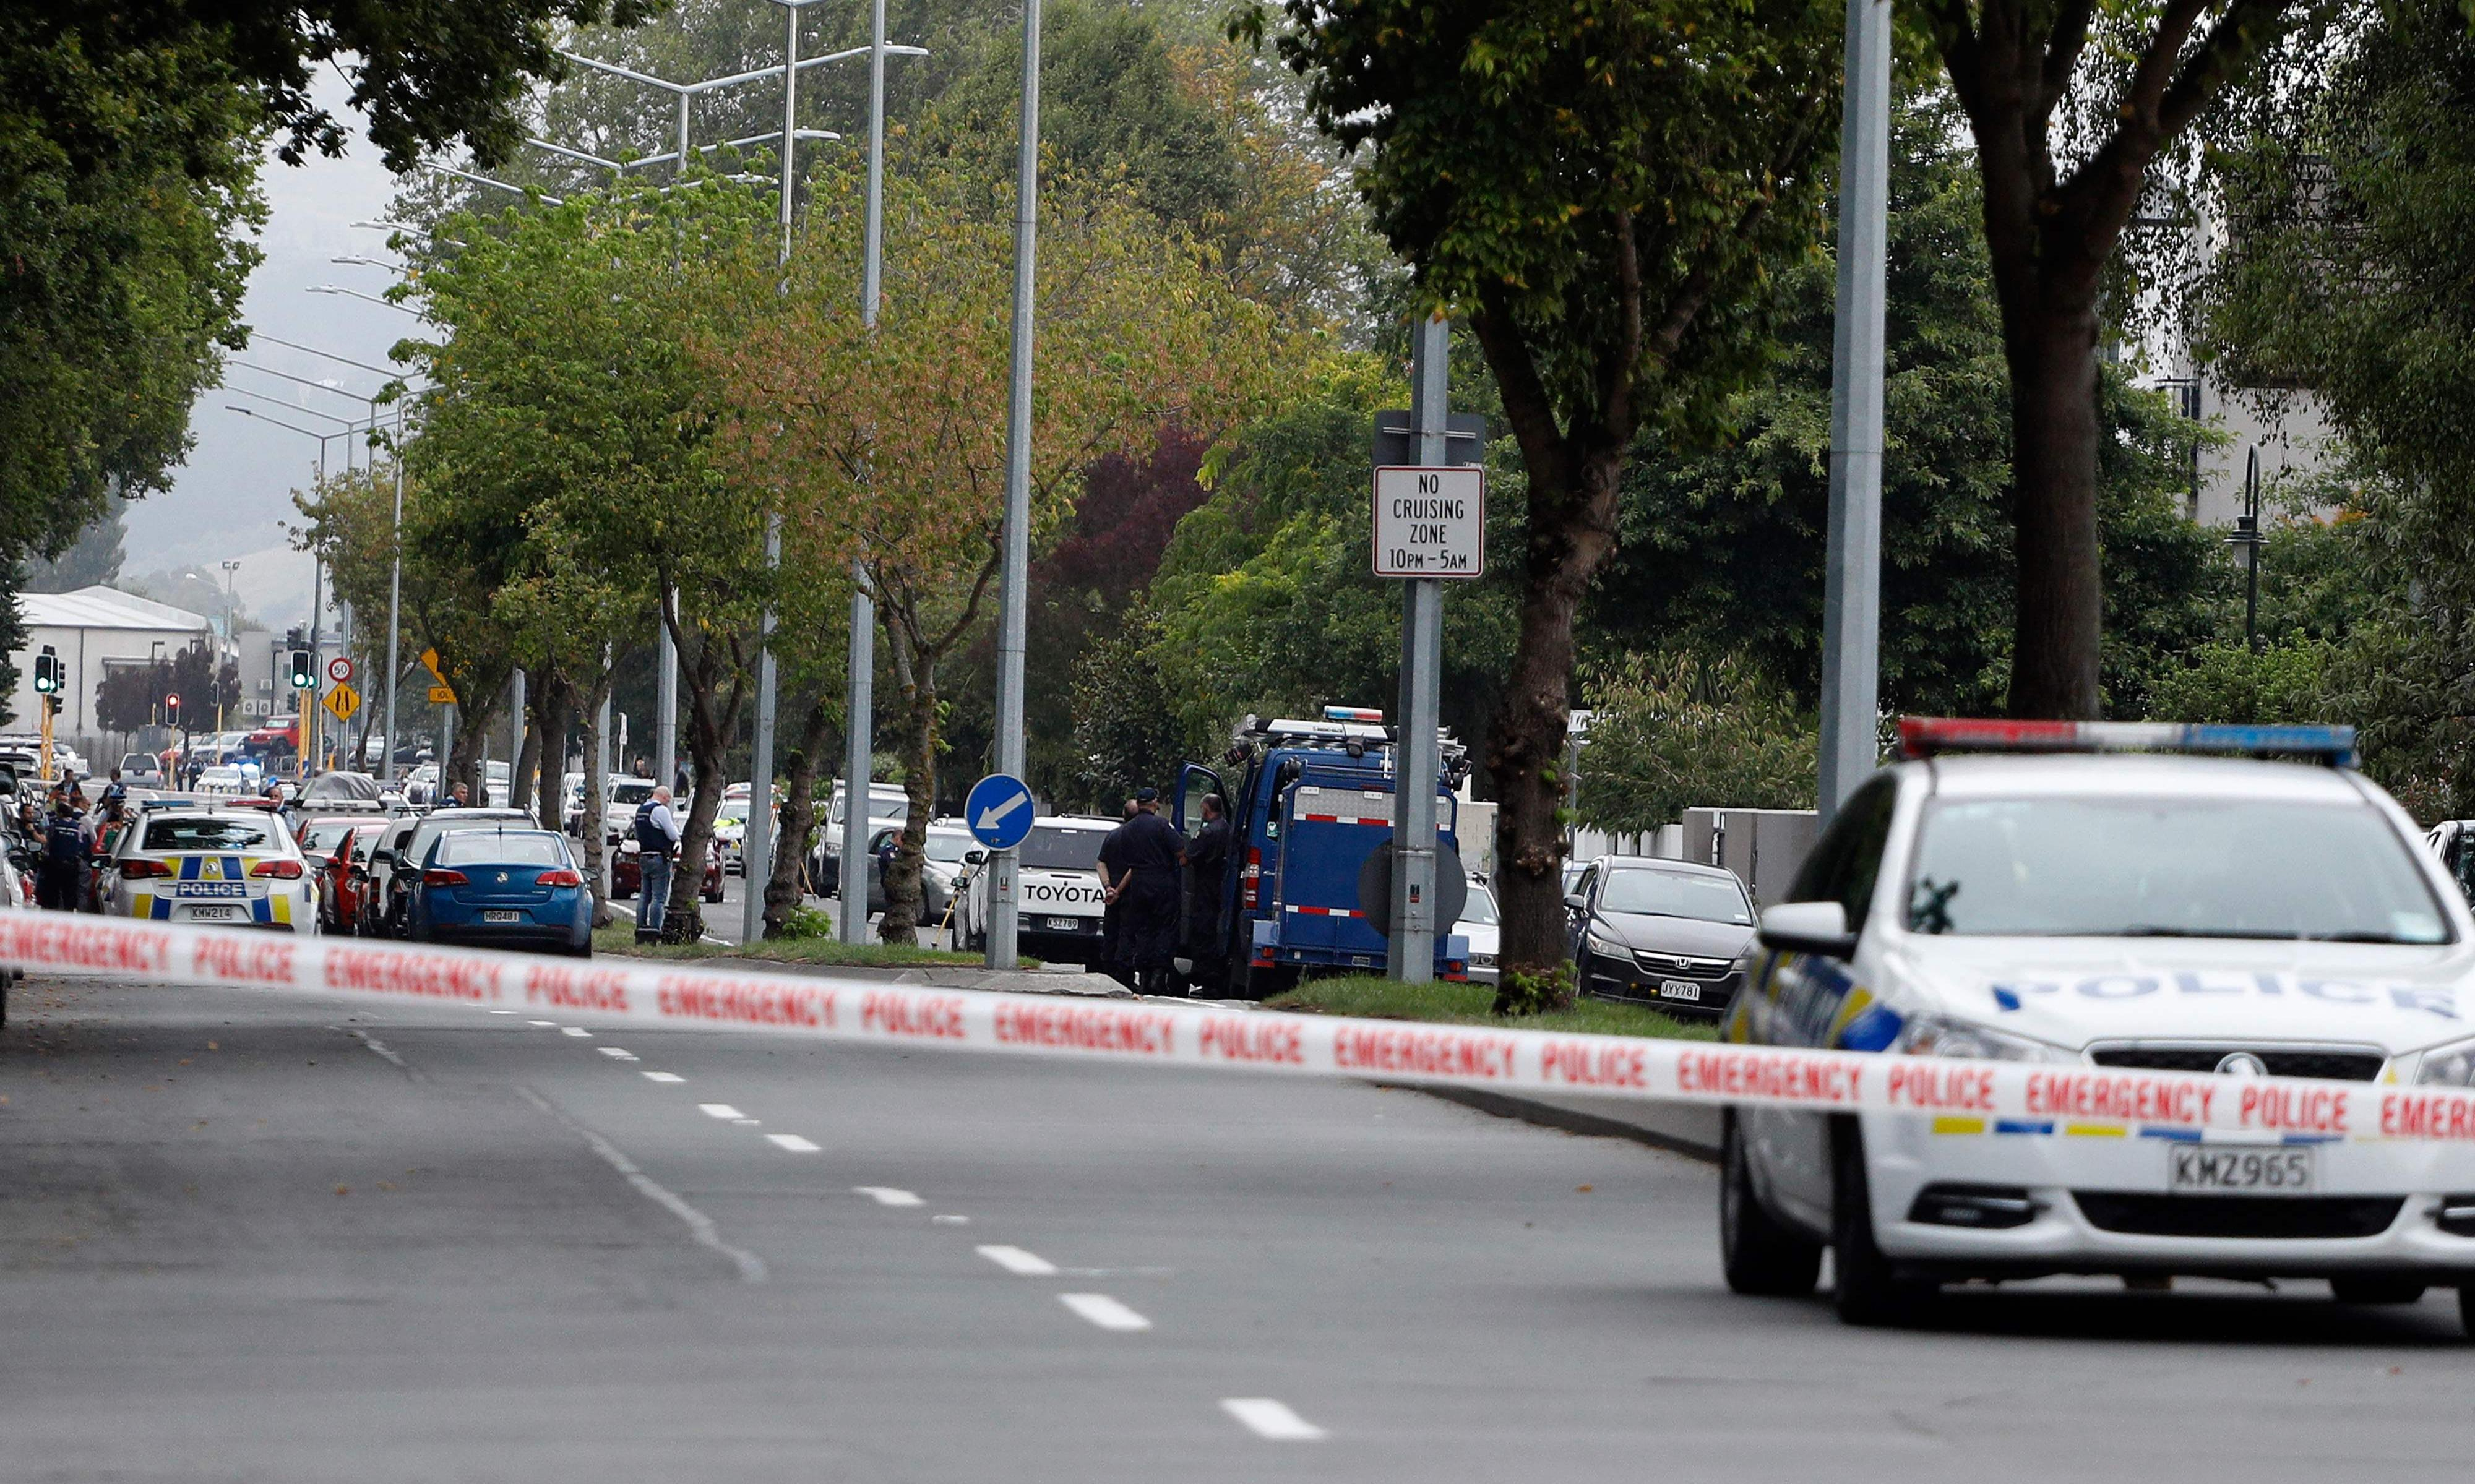 Video of Christchurch attack runs on social media and news sites